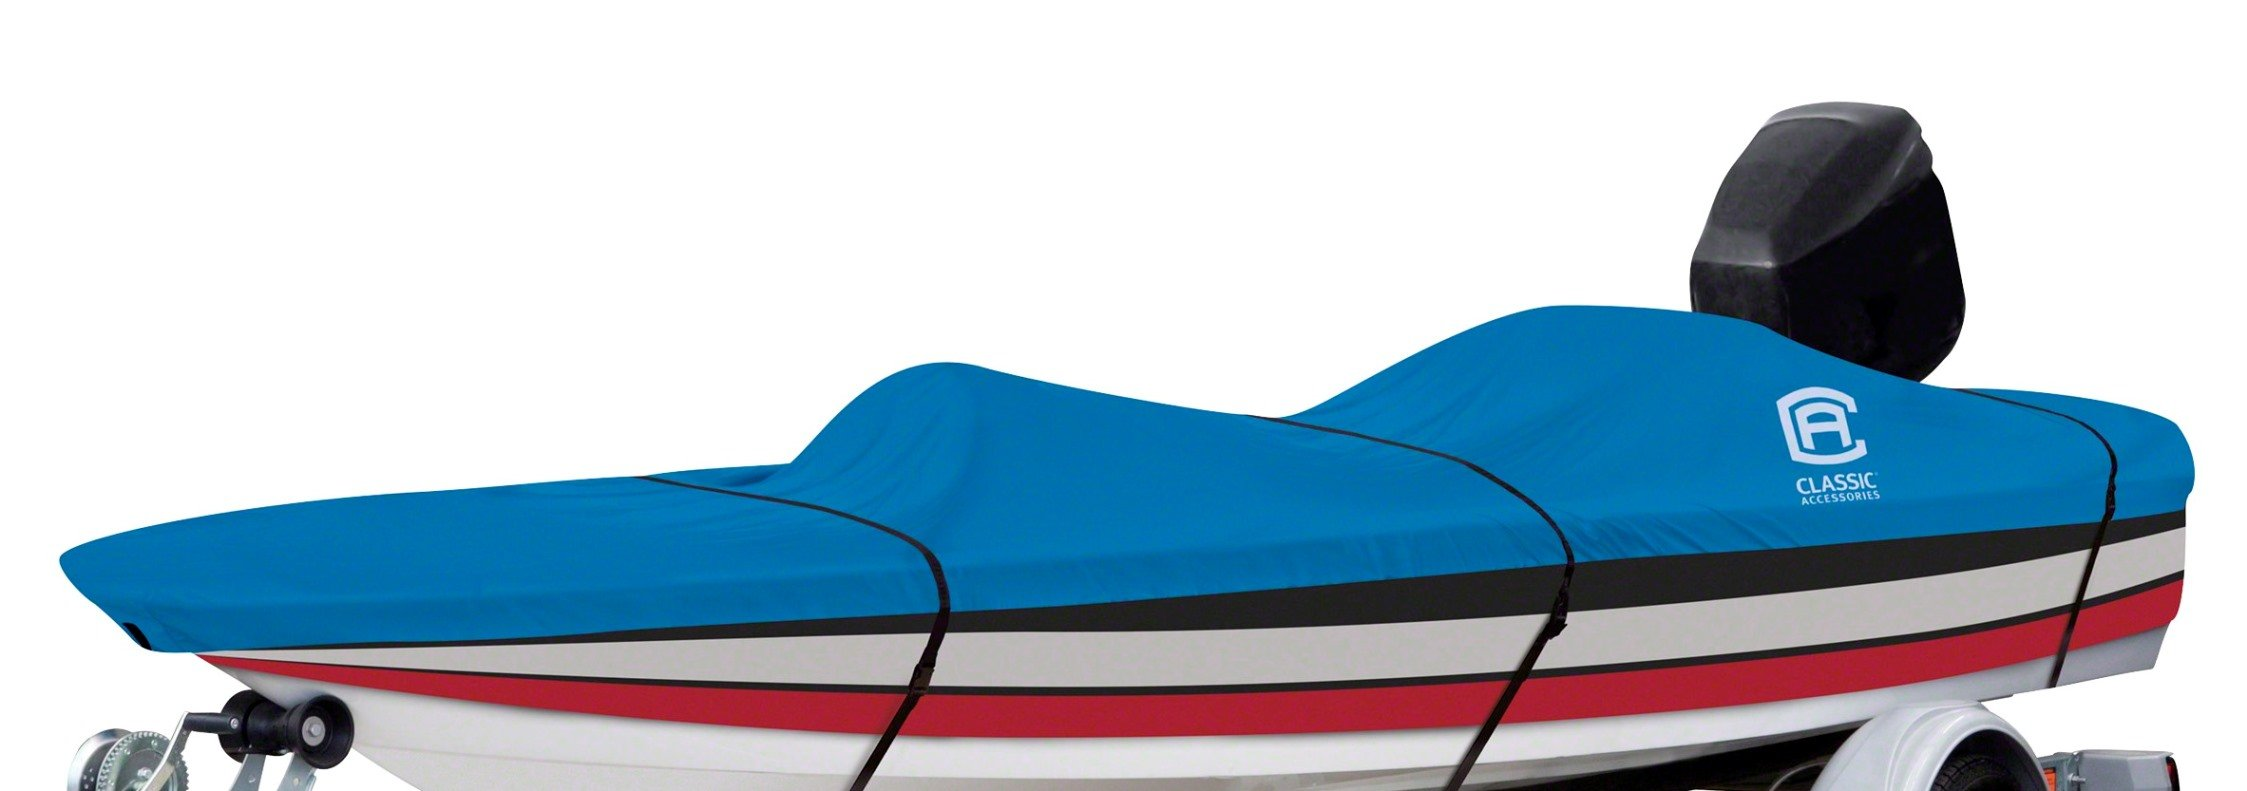 Classic Accessories Stellex Boat Cover For Bass Boats, 16' - 18.5' L Up to 98'' W